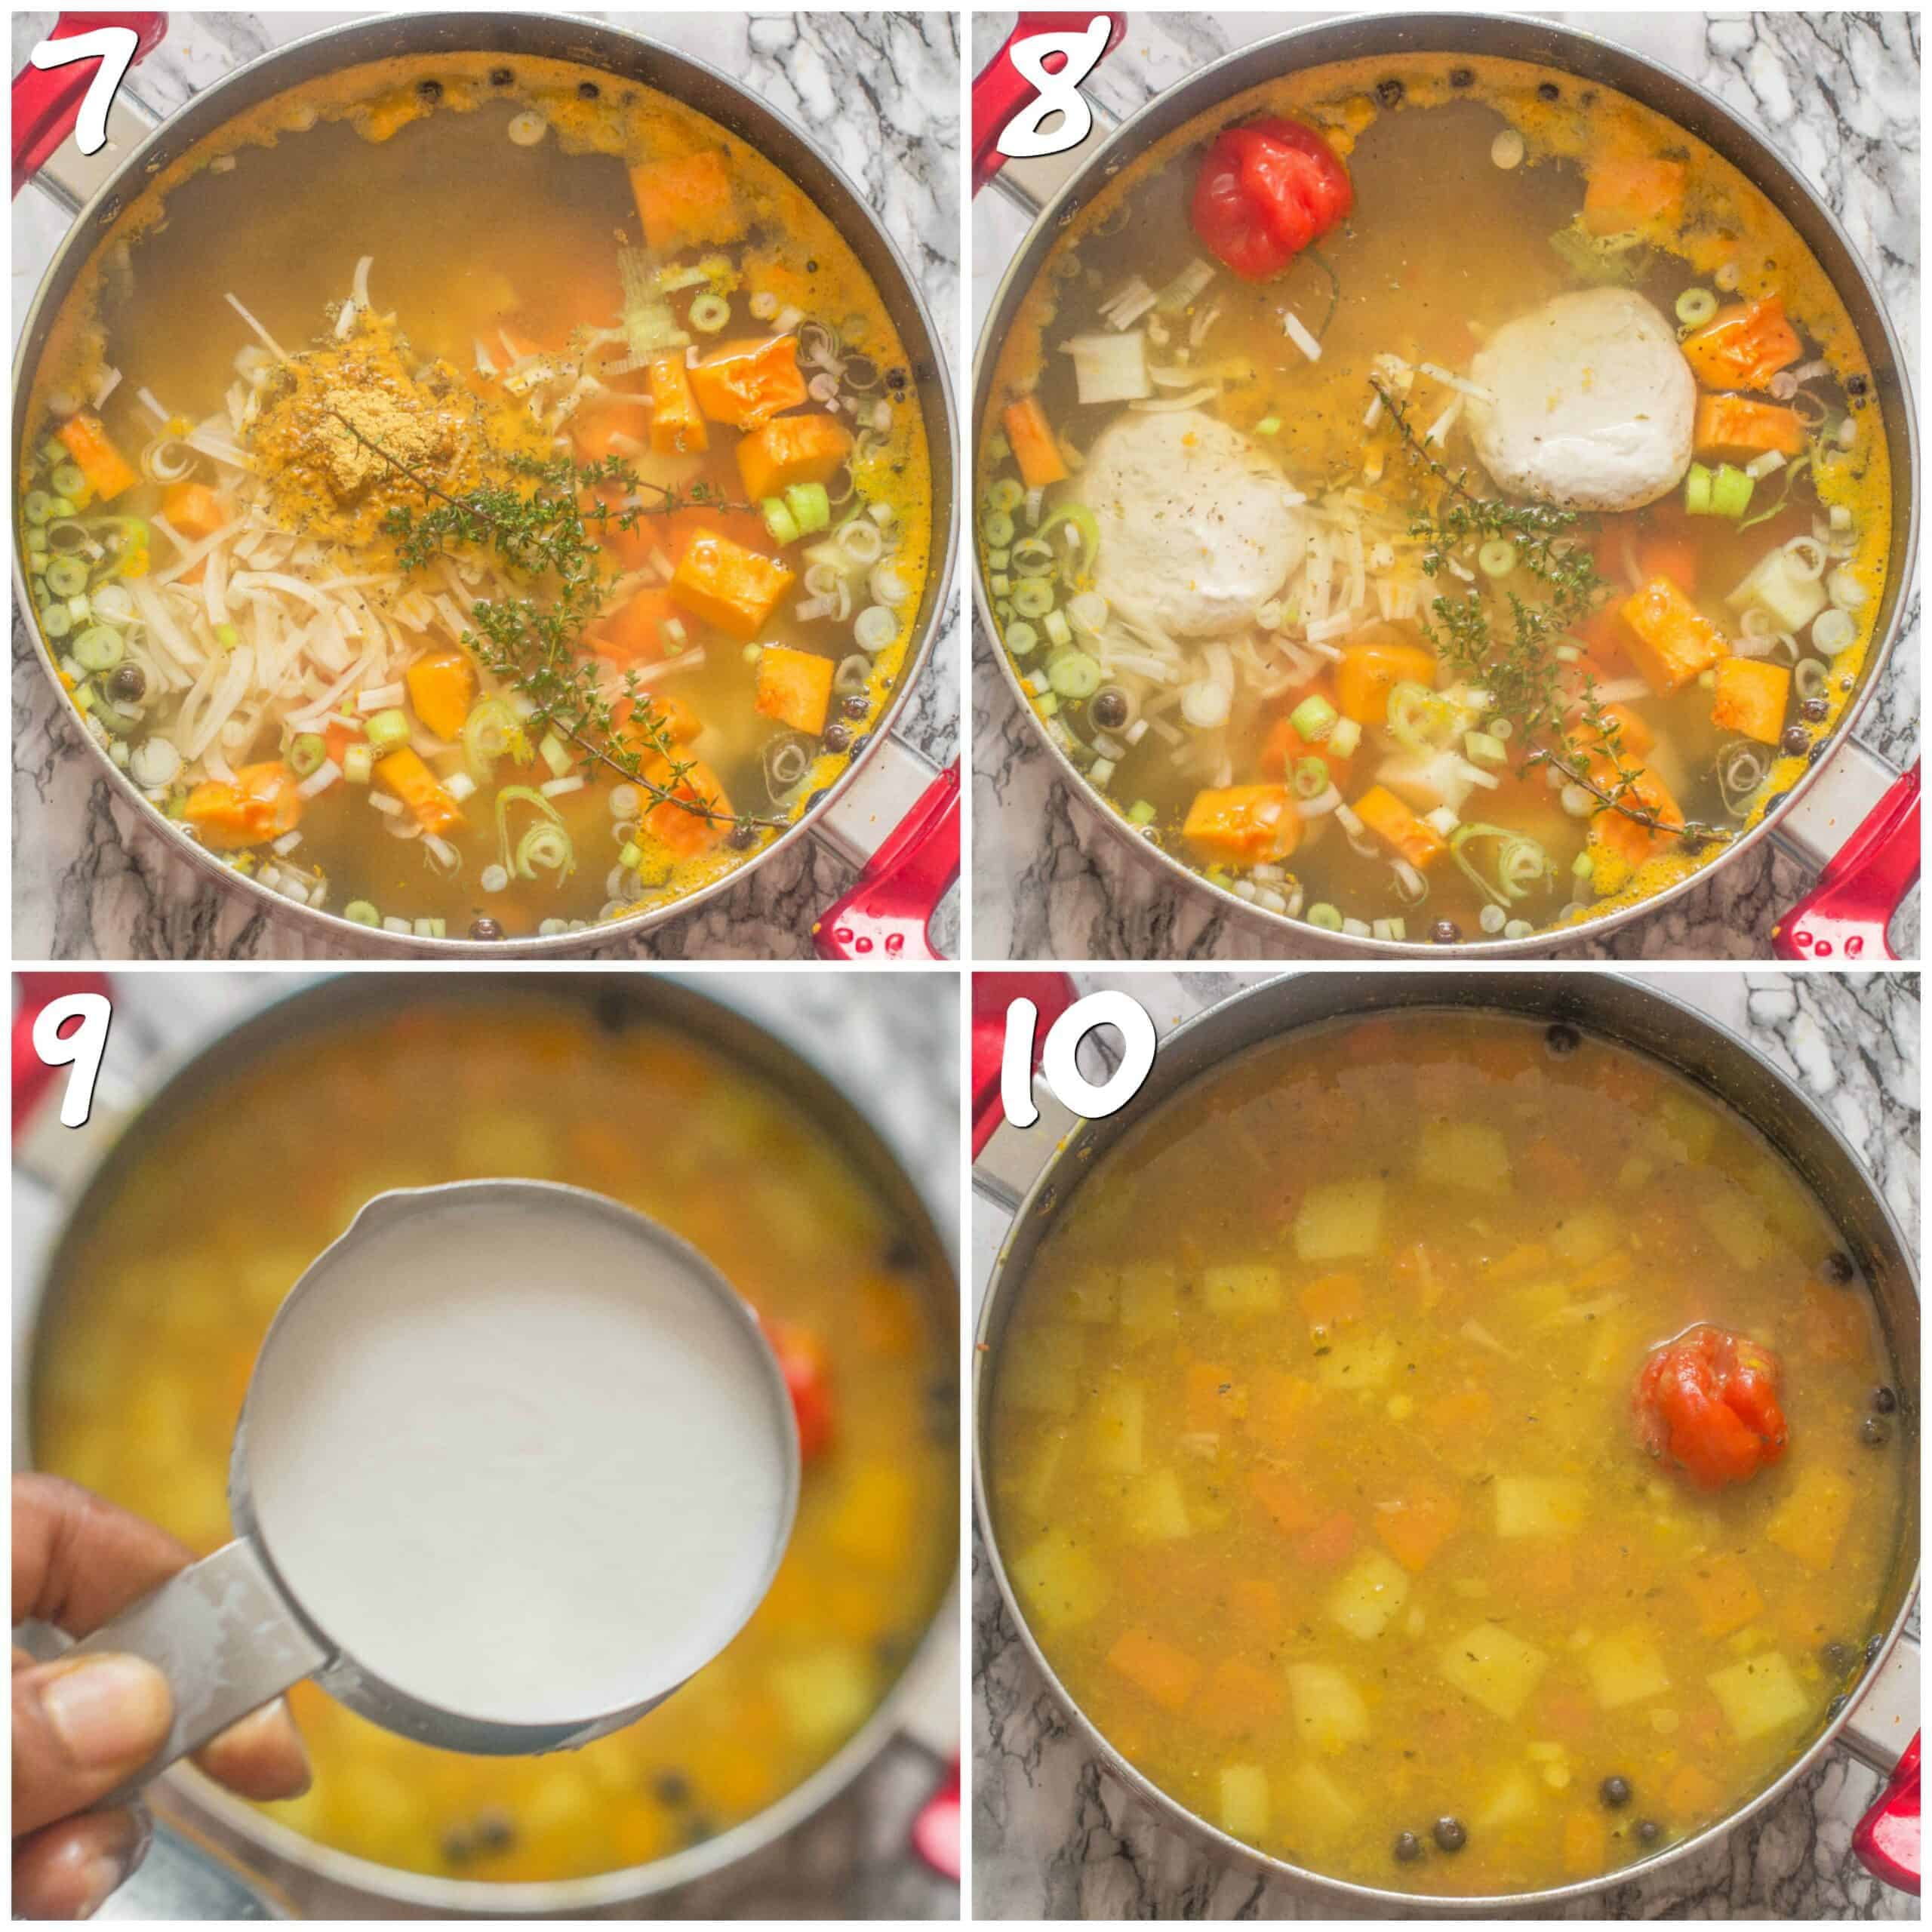 steps 7-10 adding vegetables to the soup